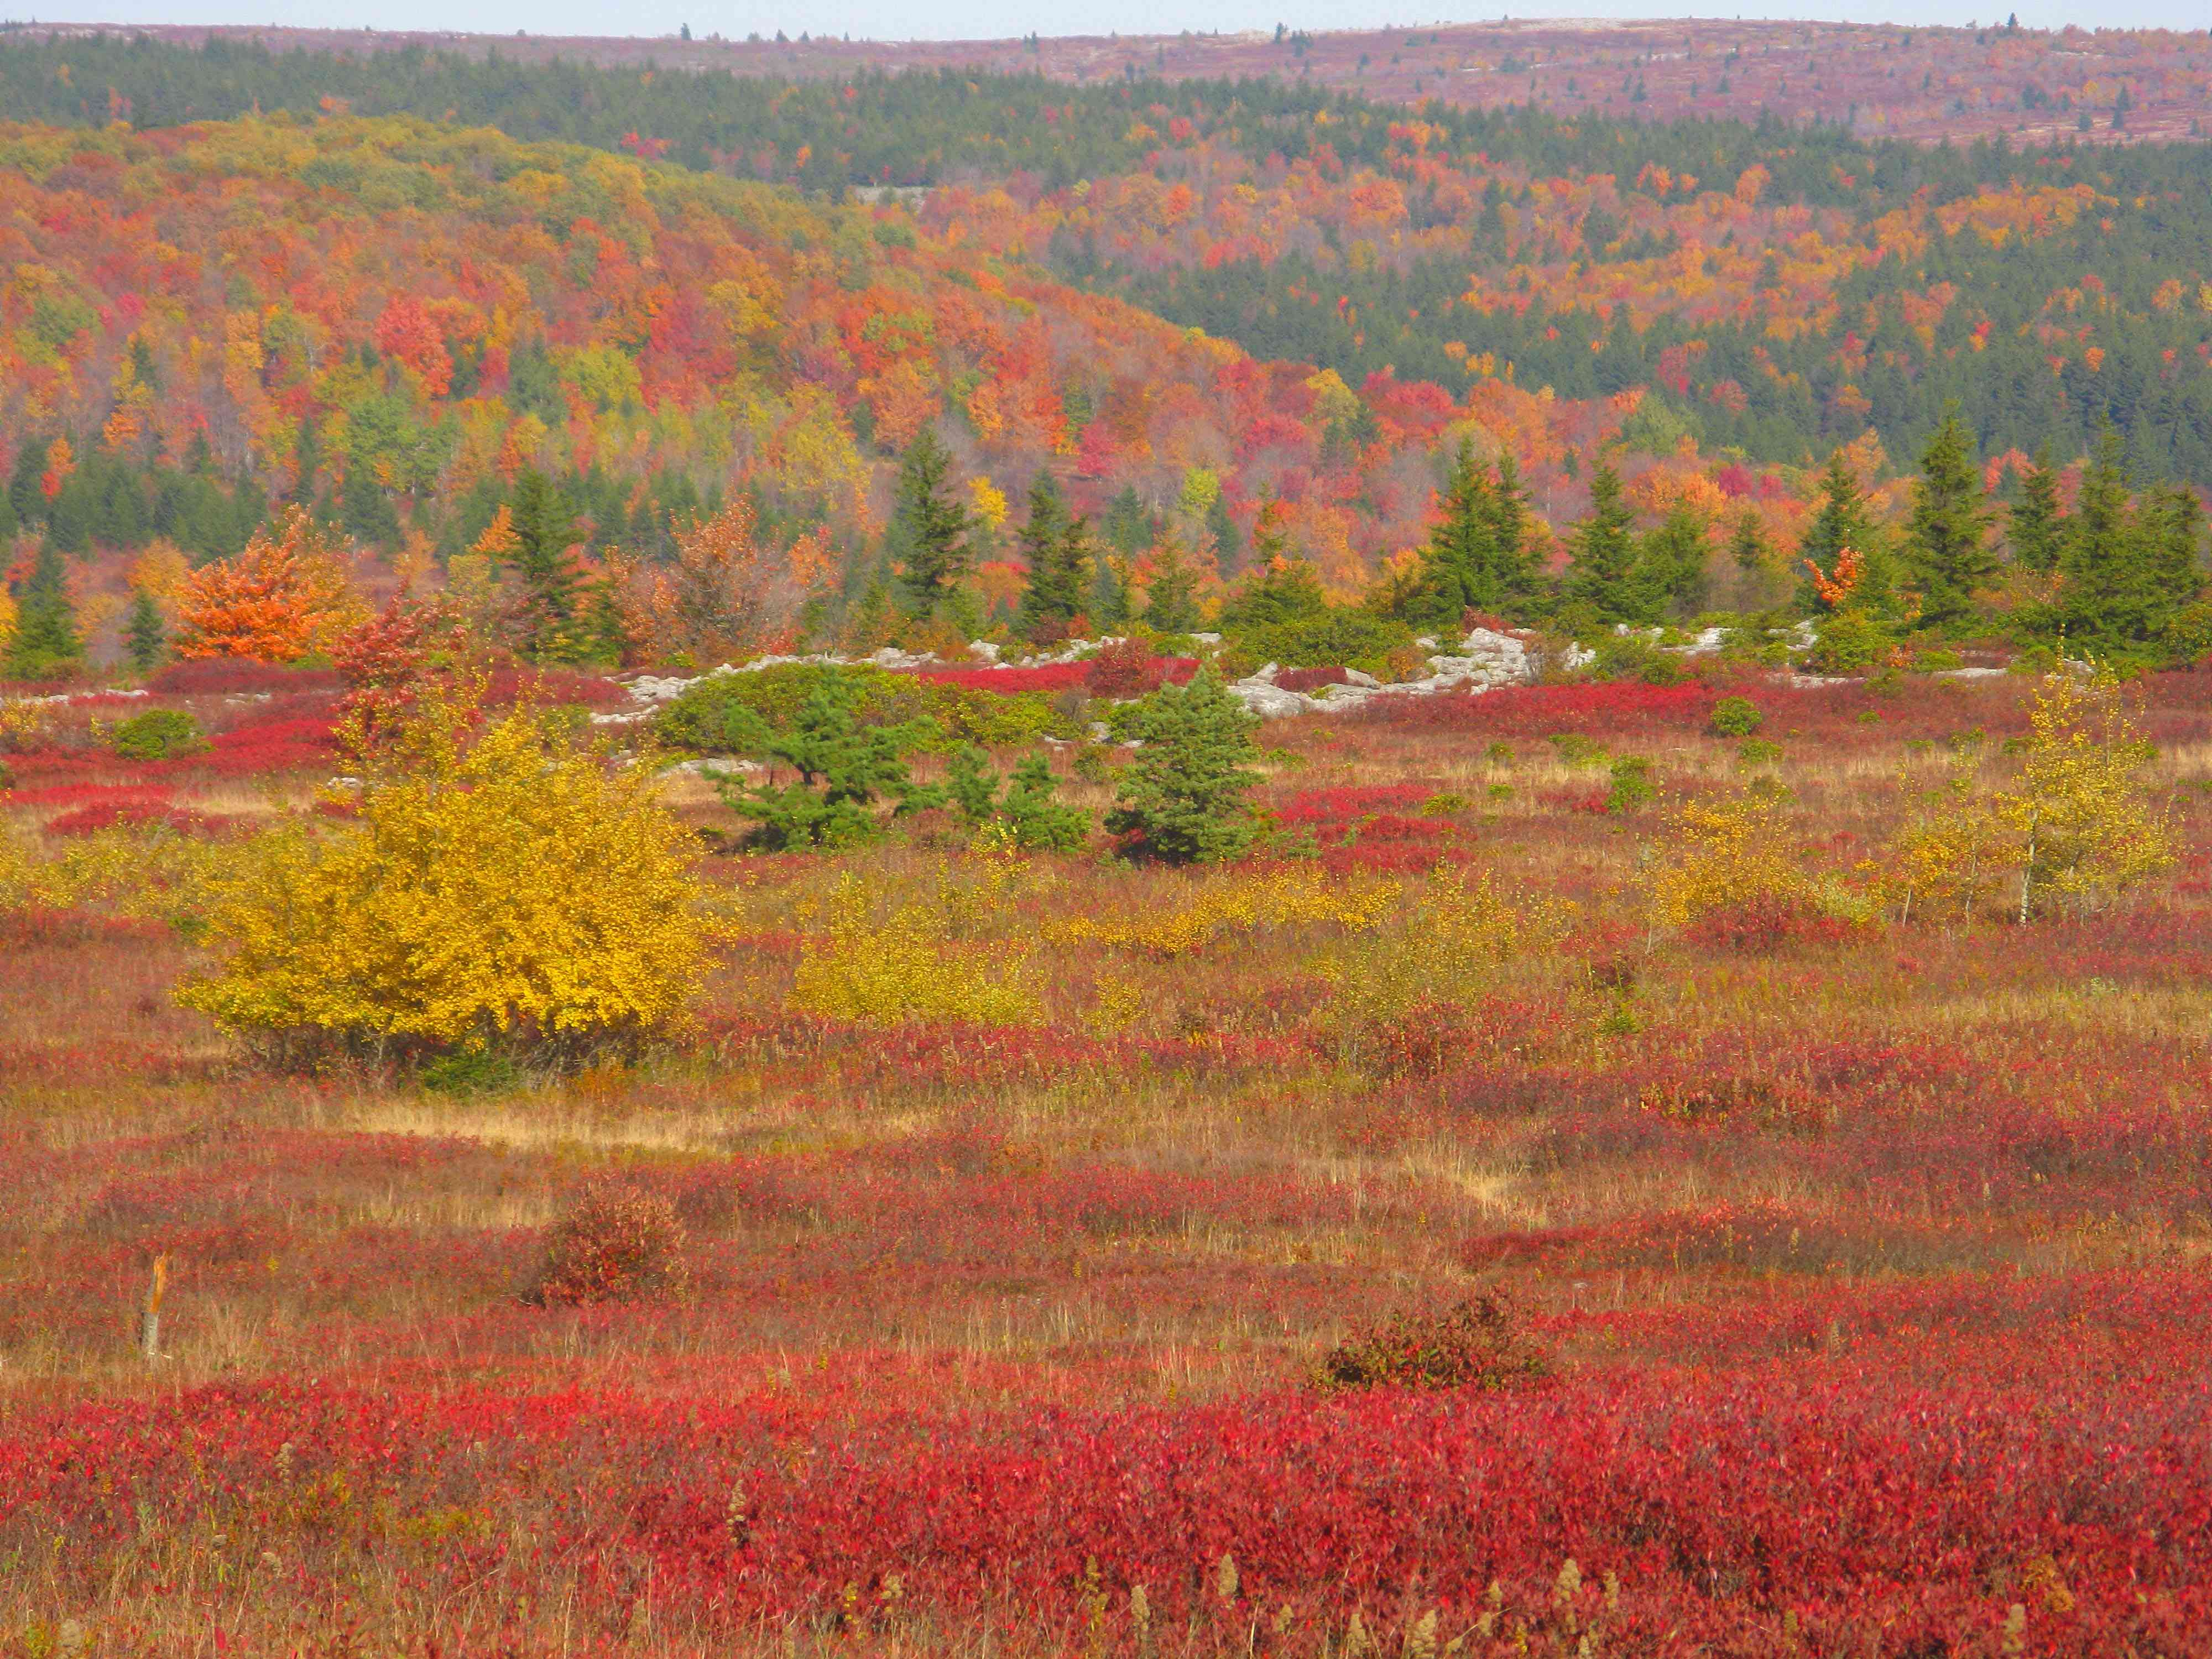 Fall colors in their full glory in West Virginia's Dolly Sods Wilderness National Forest